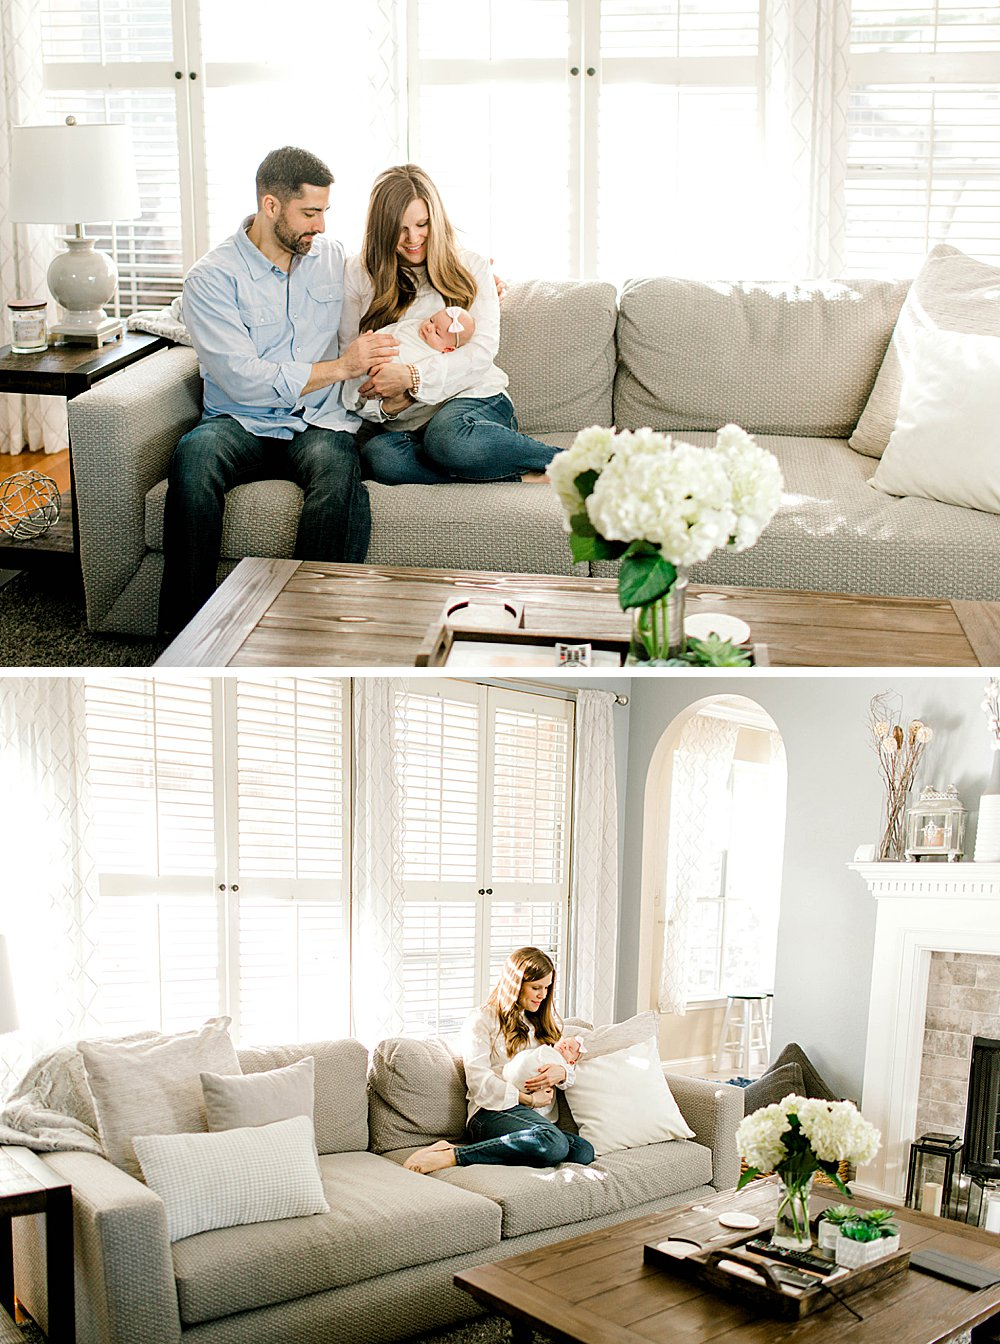 Lifestyle Photography Session I parents in living room with baby girl